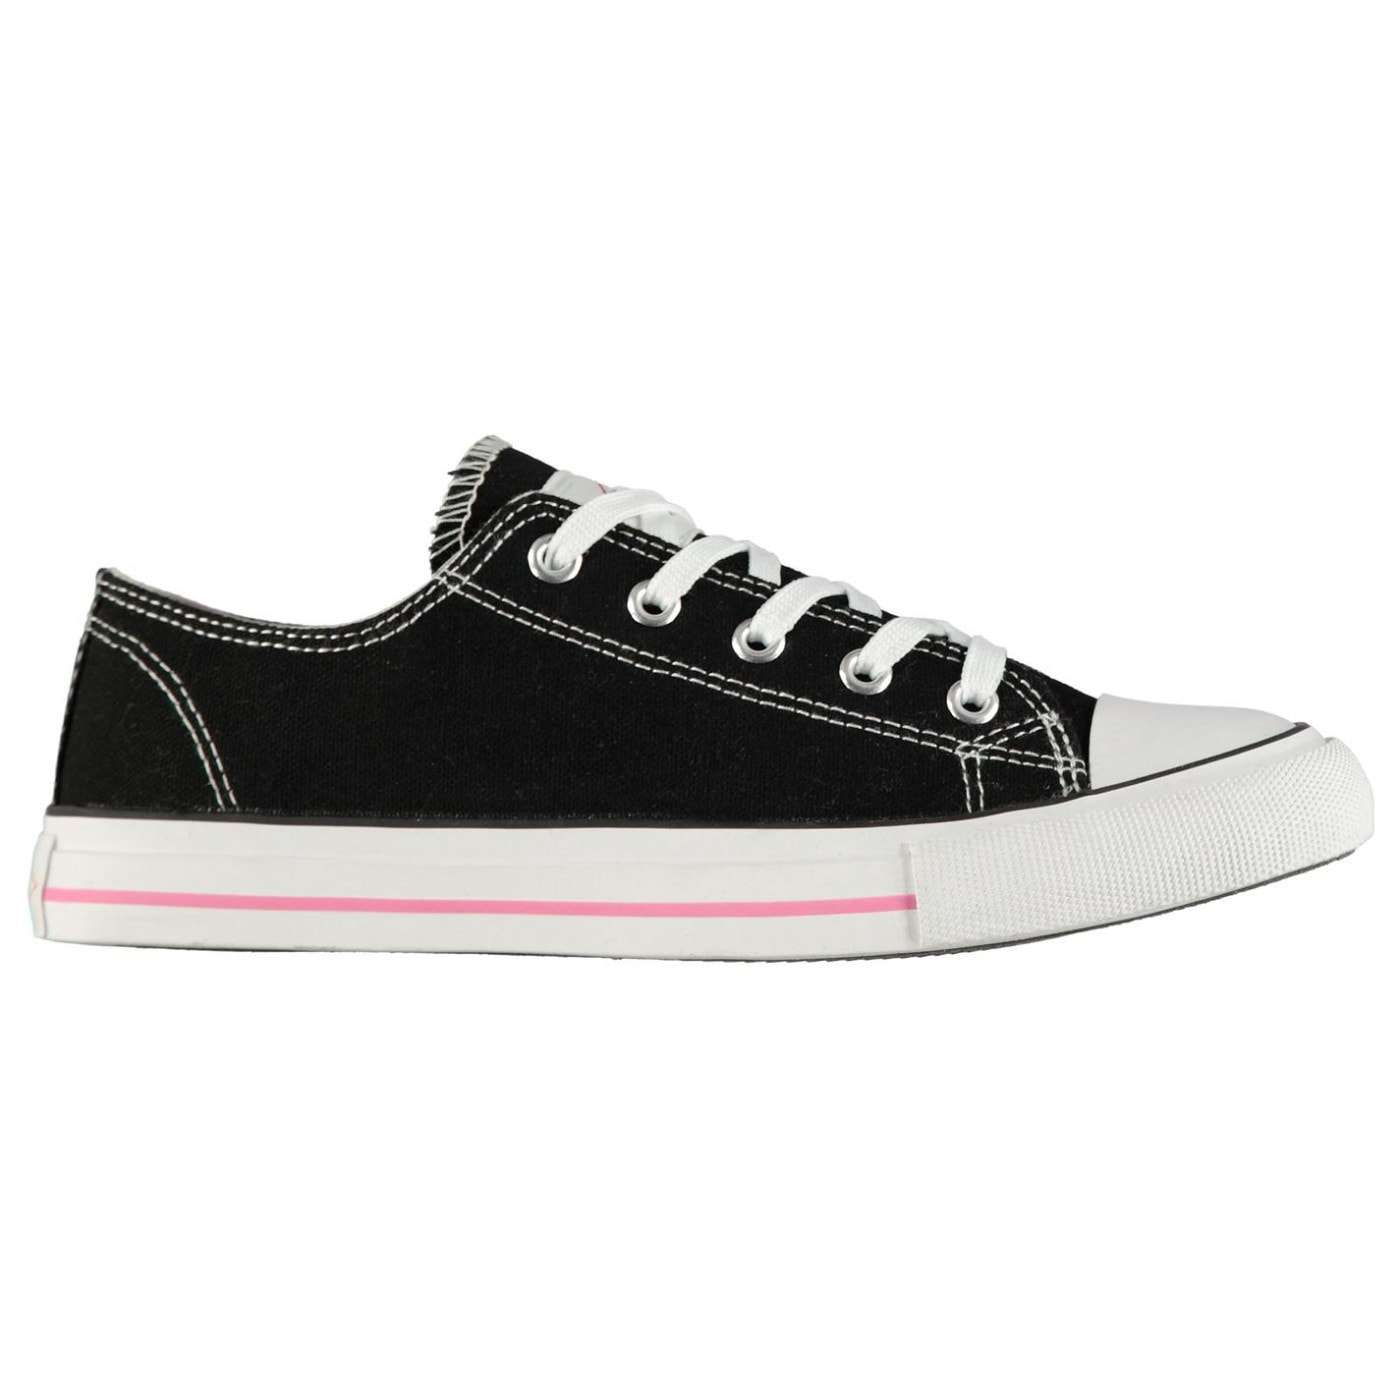 Lee Cooper Canvas Lo Shoes Ladies